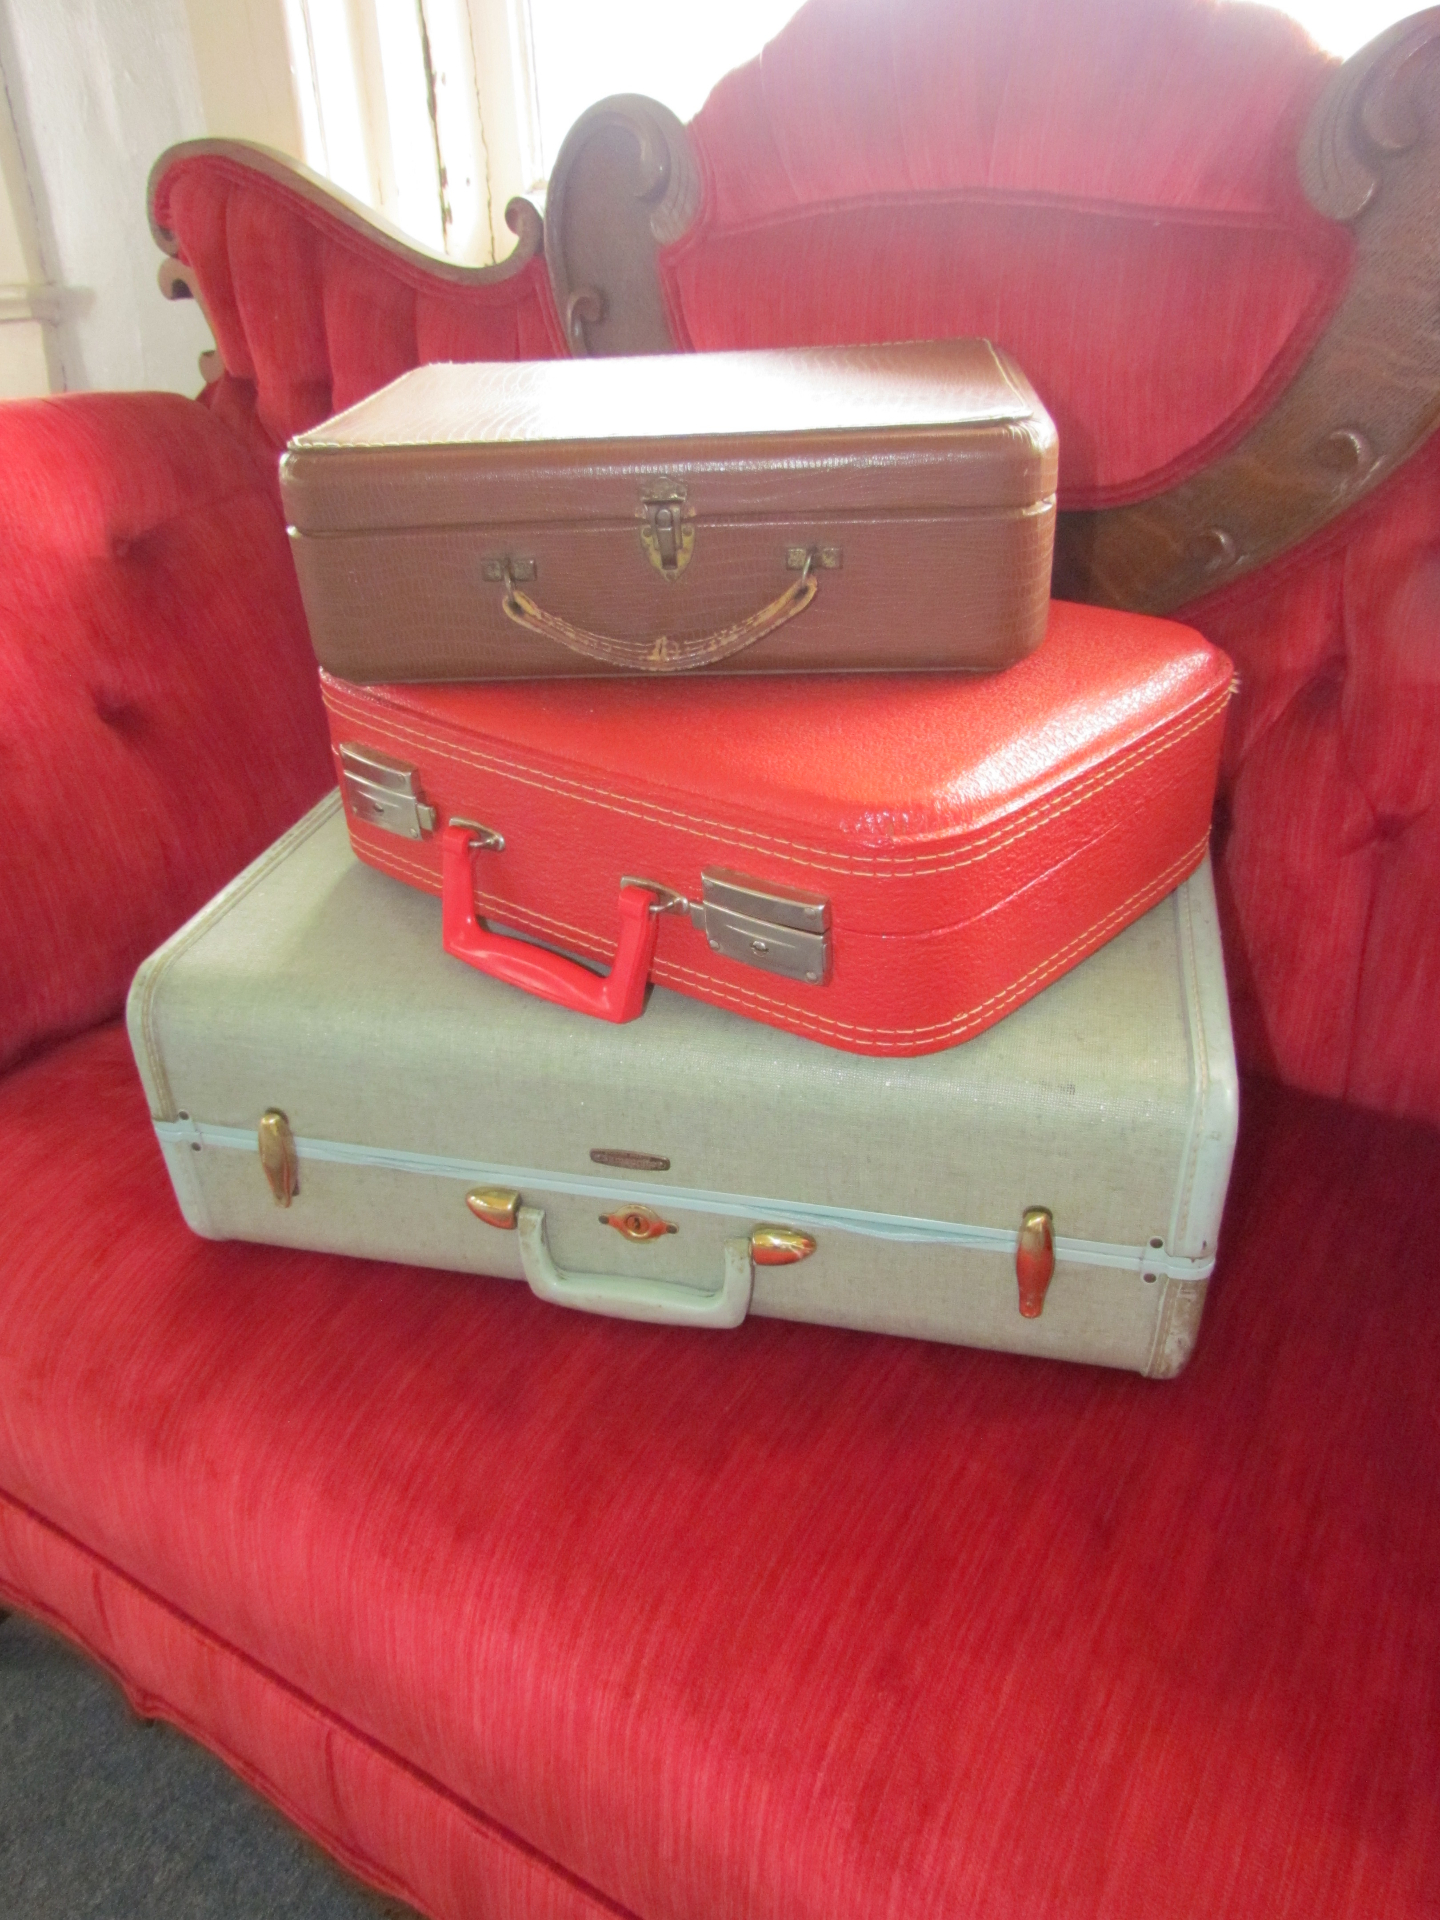 Vintage Suitcase Small $5 / Day Medium $6 / Day Large $8 / Day